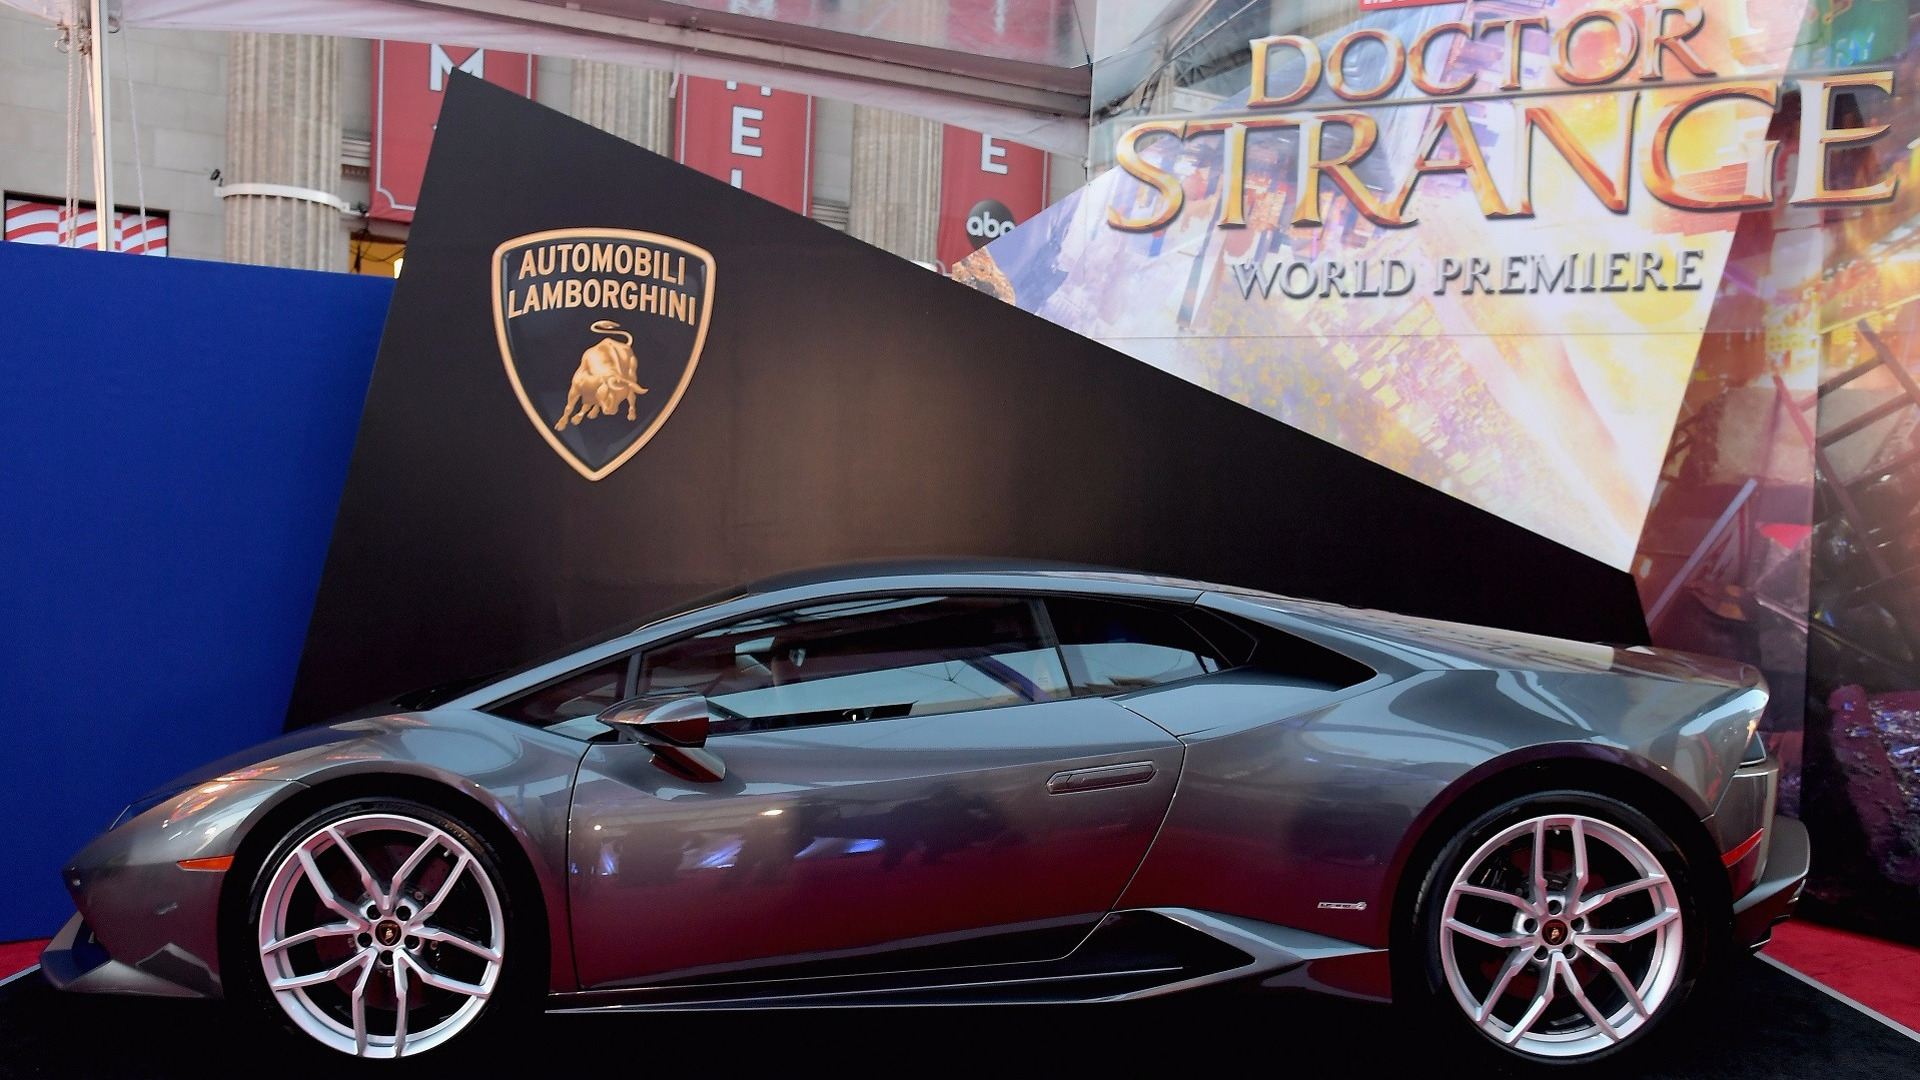 Lamborghini Huracan Coupe sitting on red carpet at movie premiere